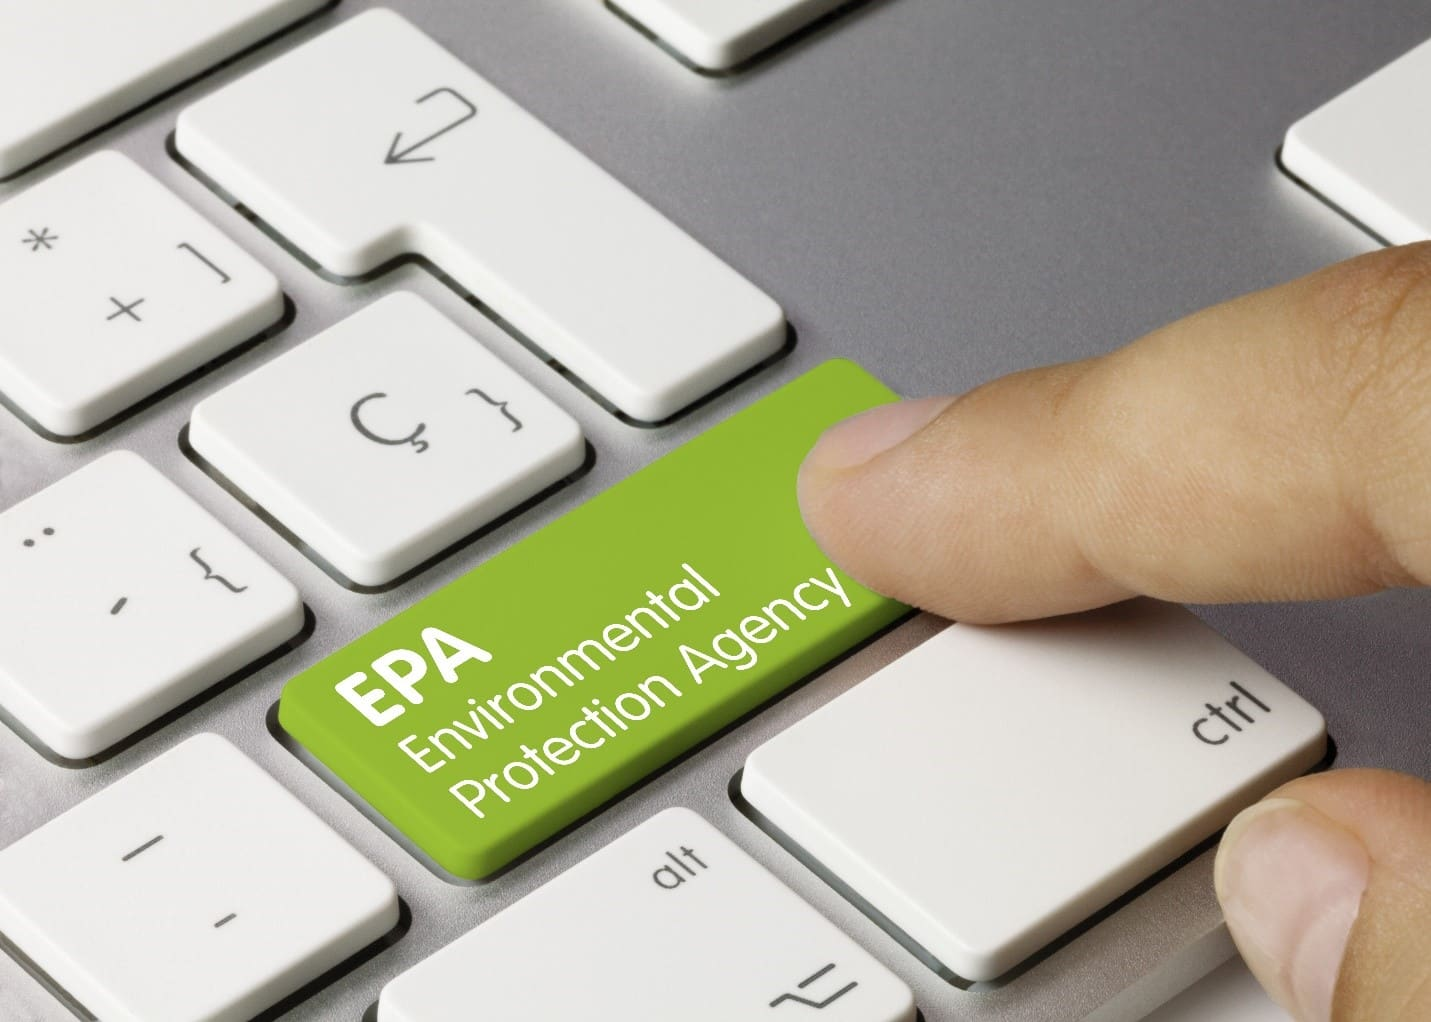 keyboard green shift button named as EPA(Environmental Protection Agency)